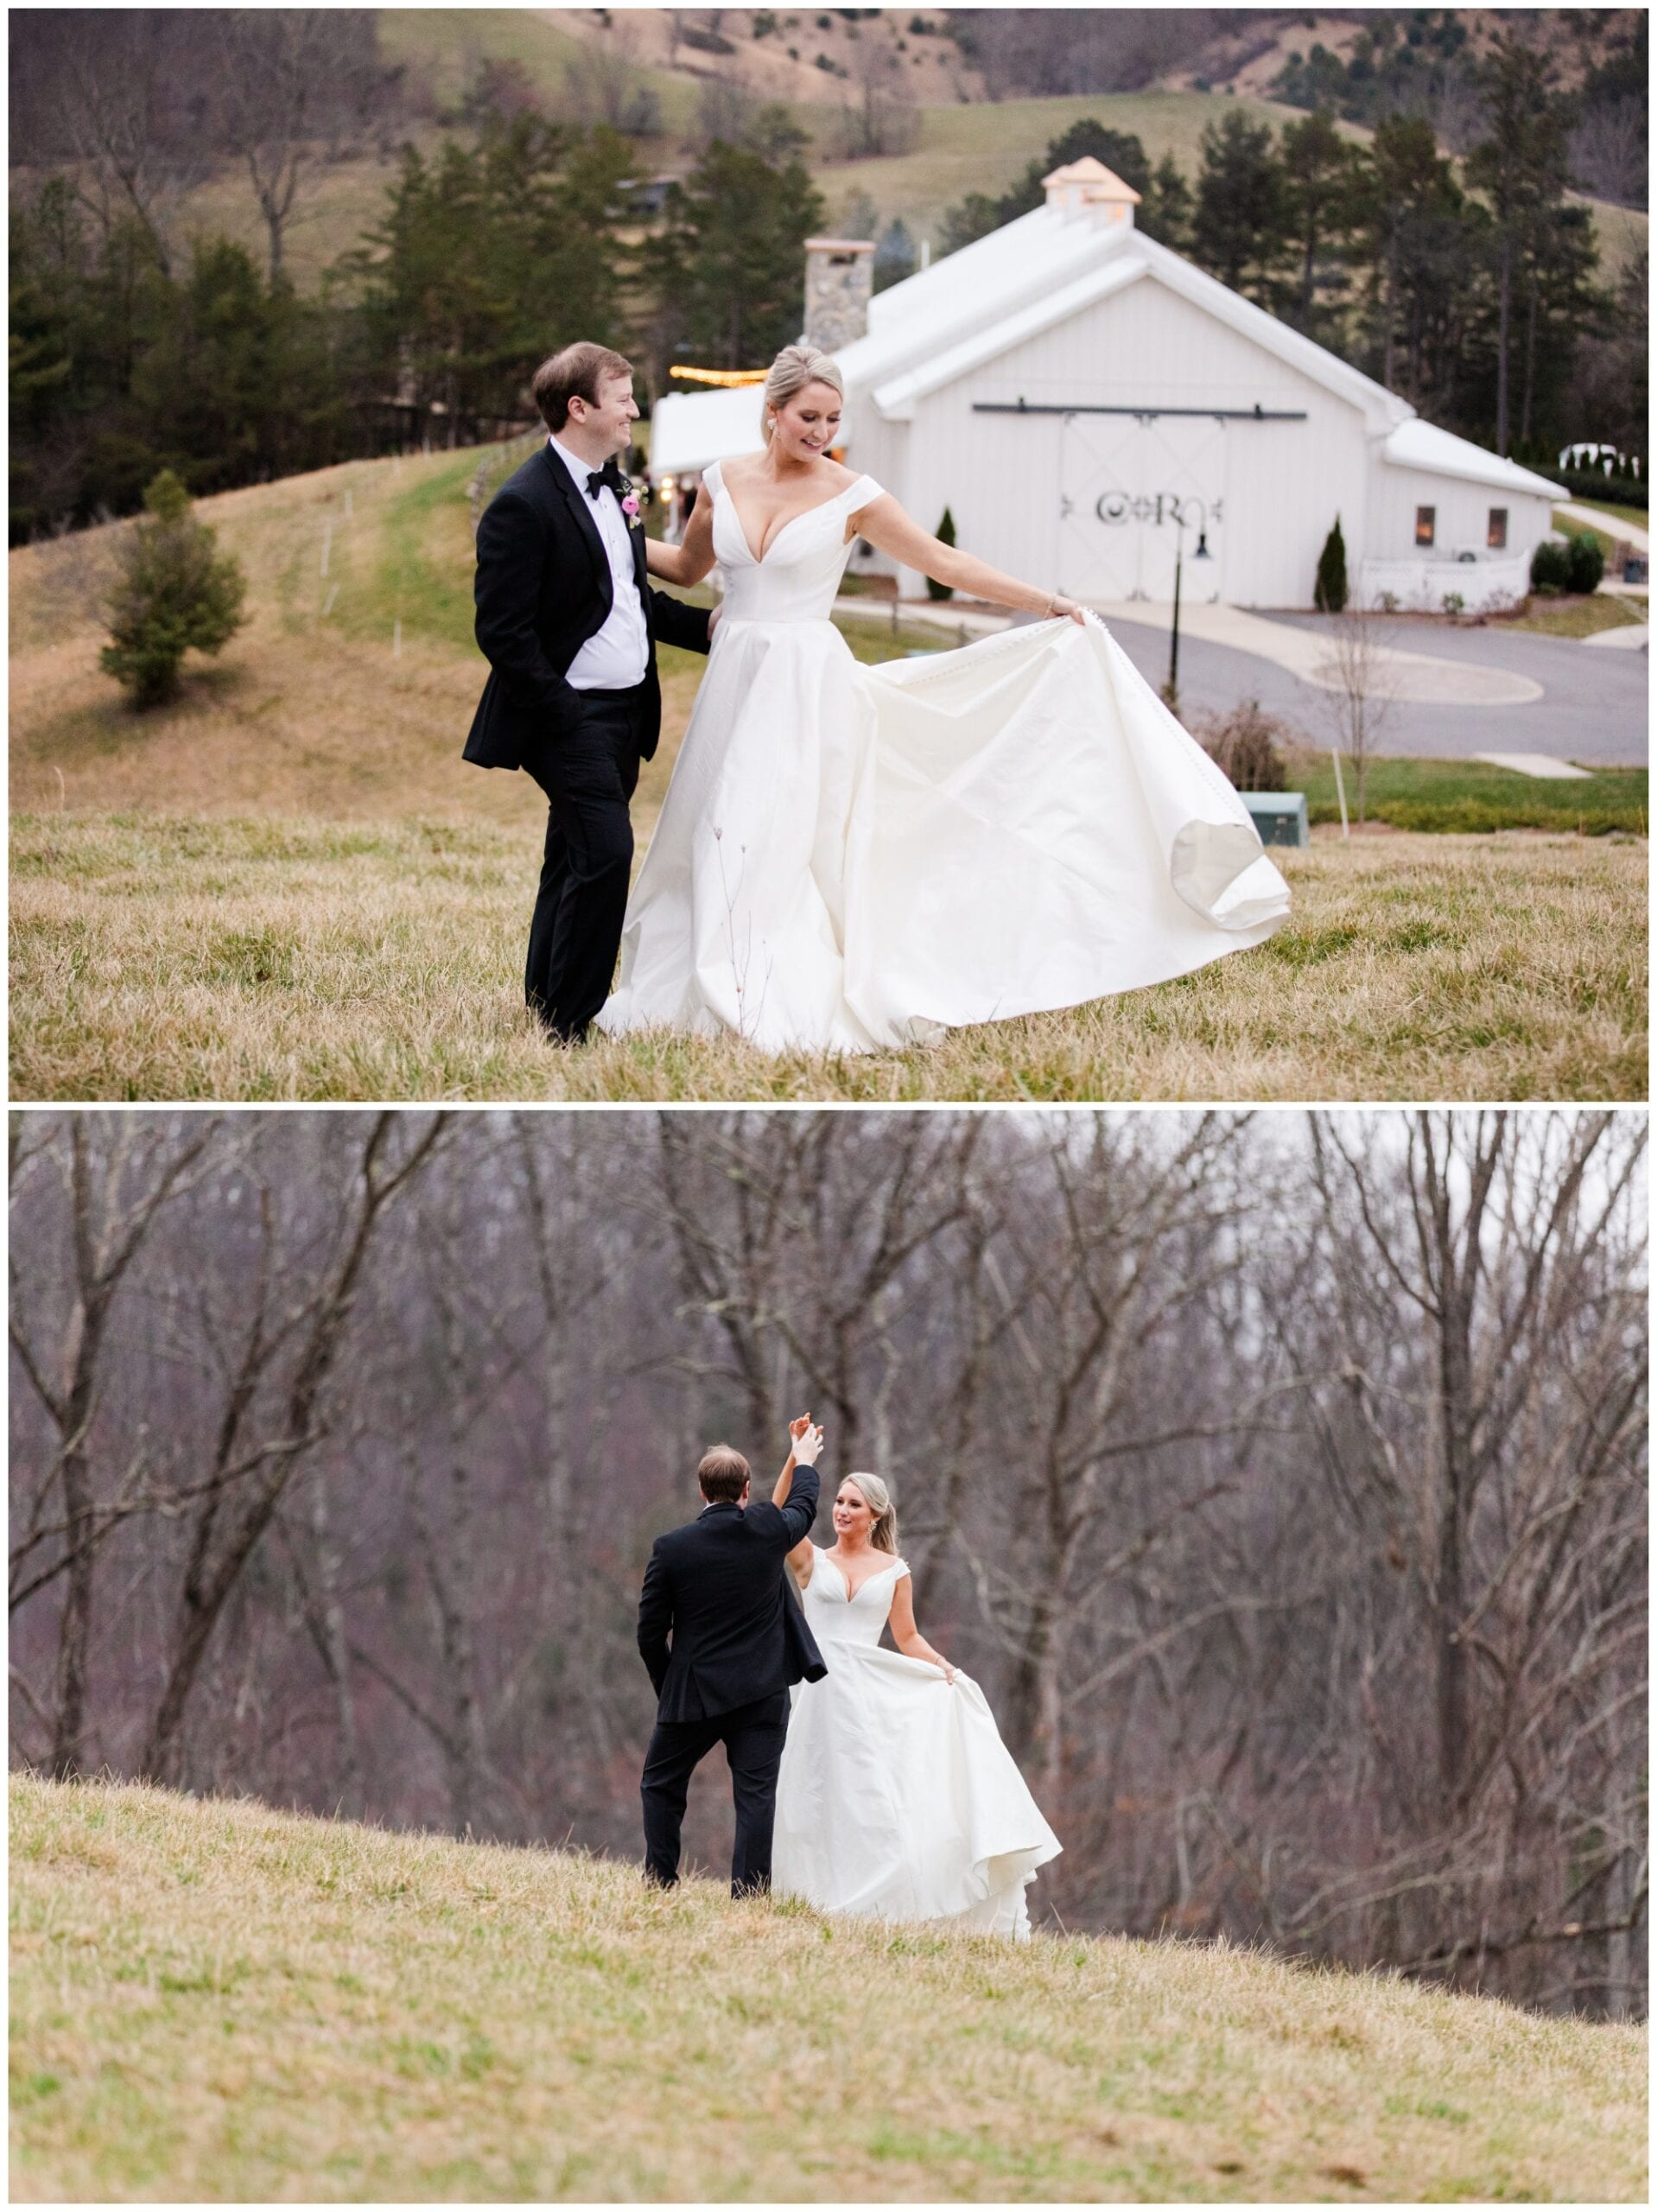 Couple dancing in field above their wedding venue